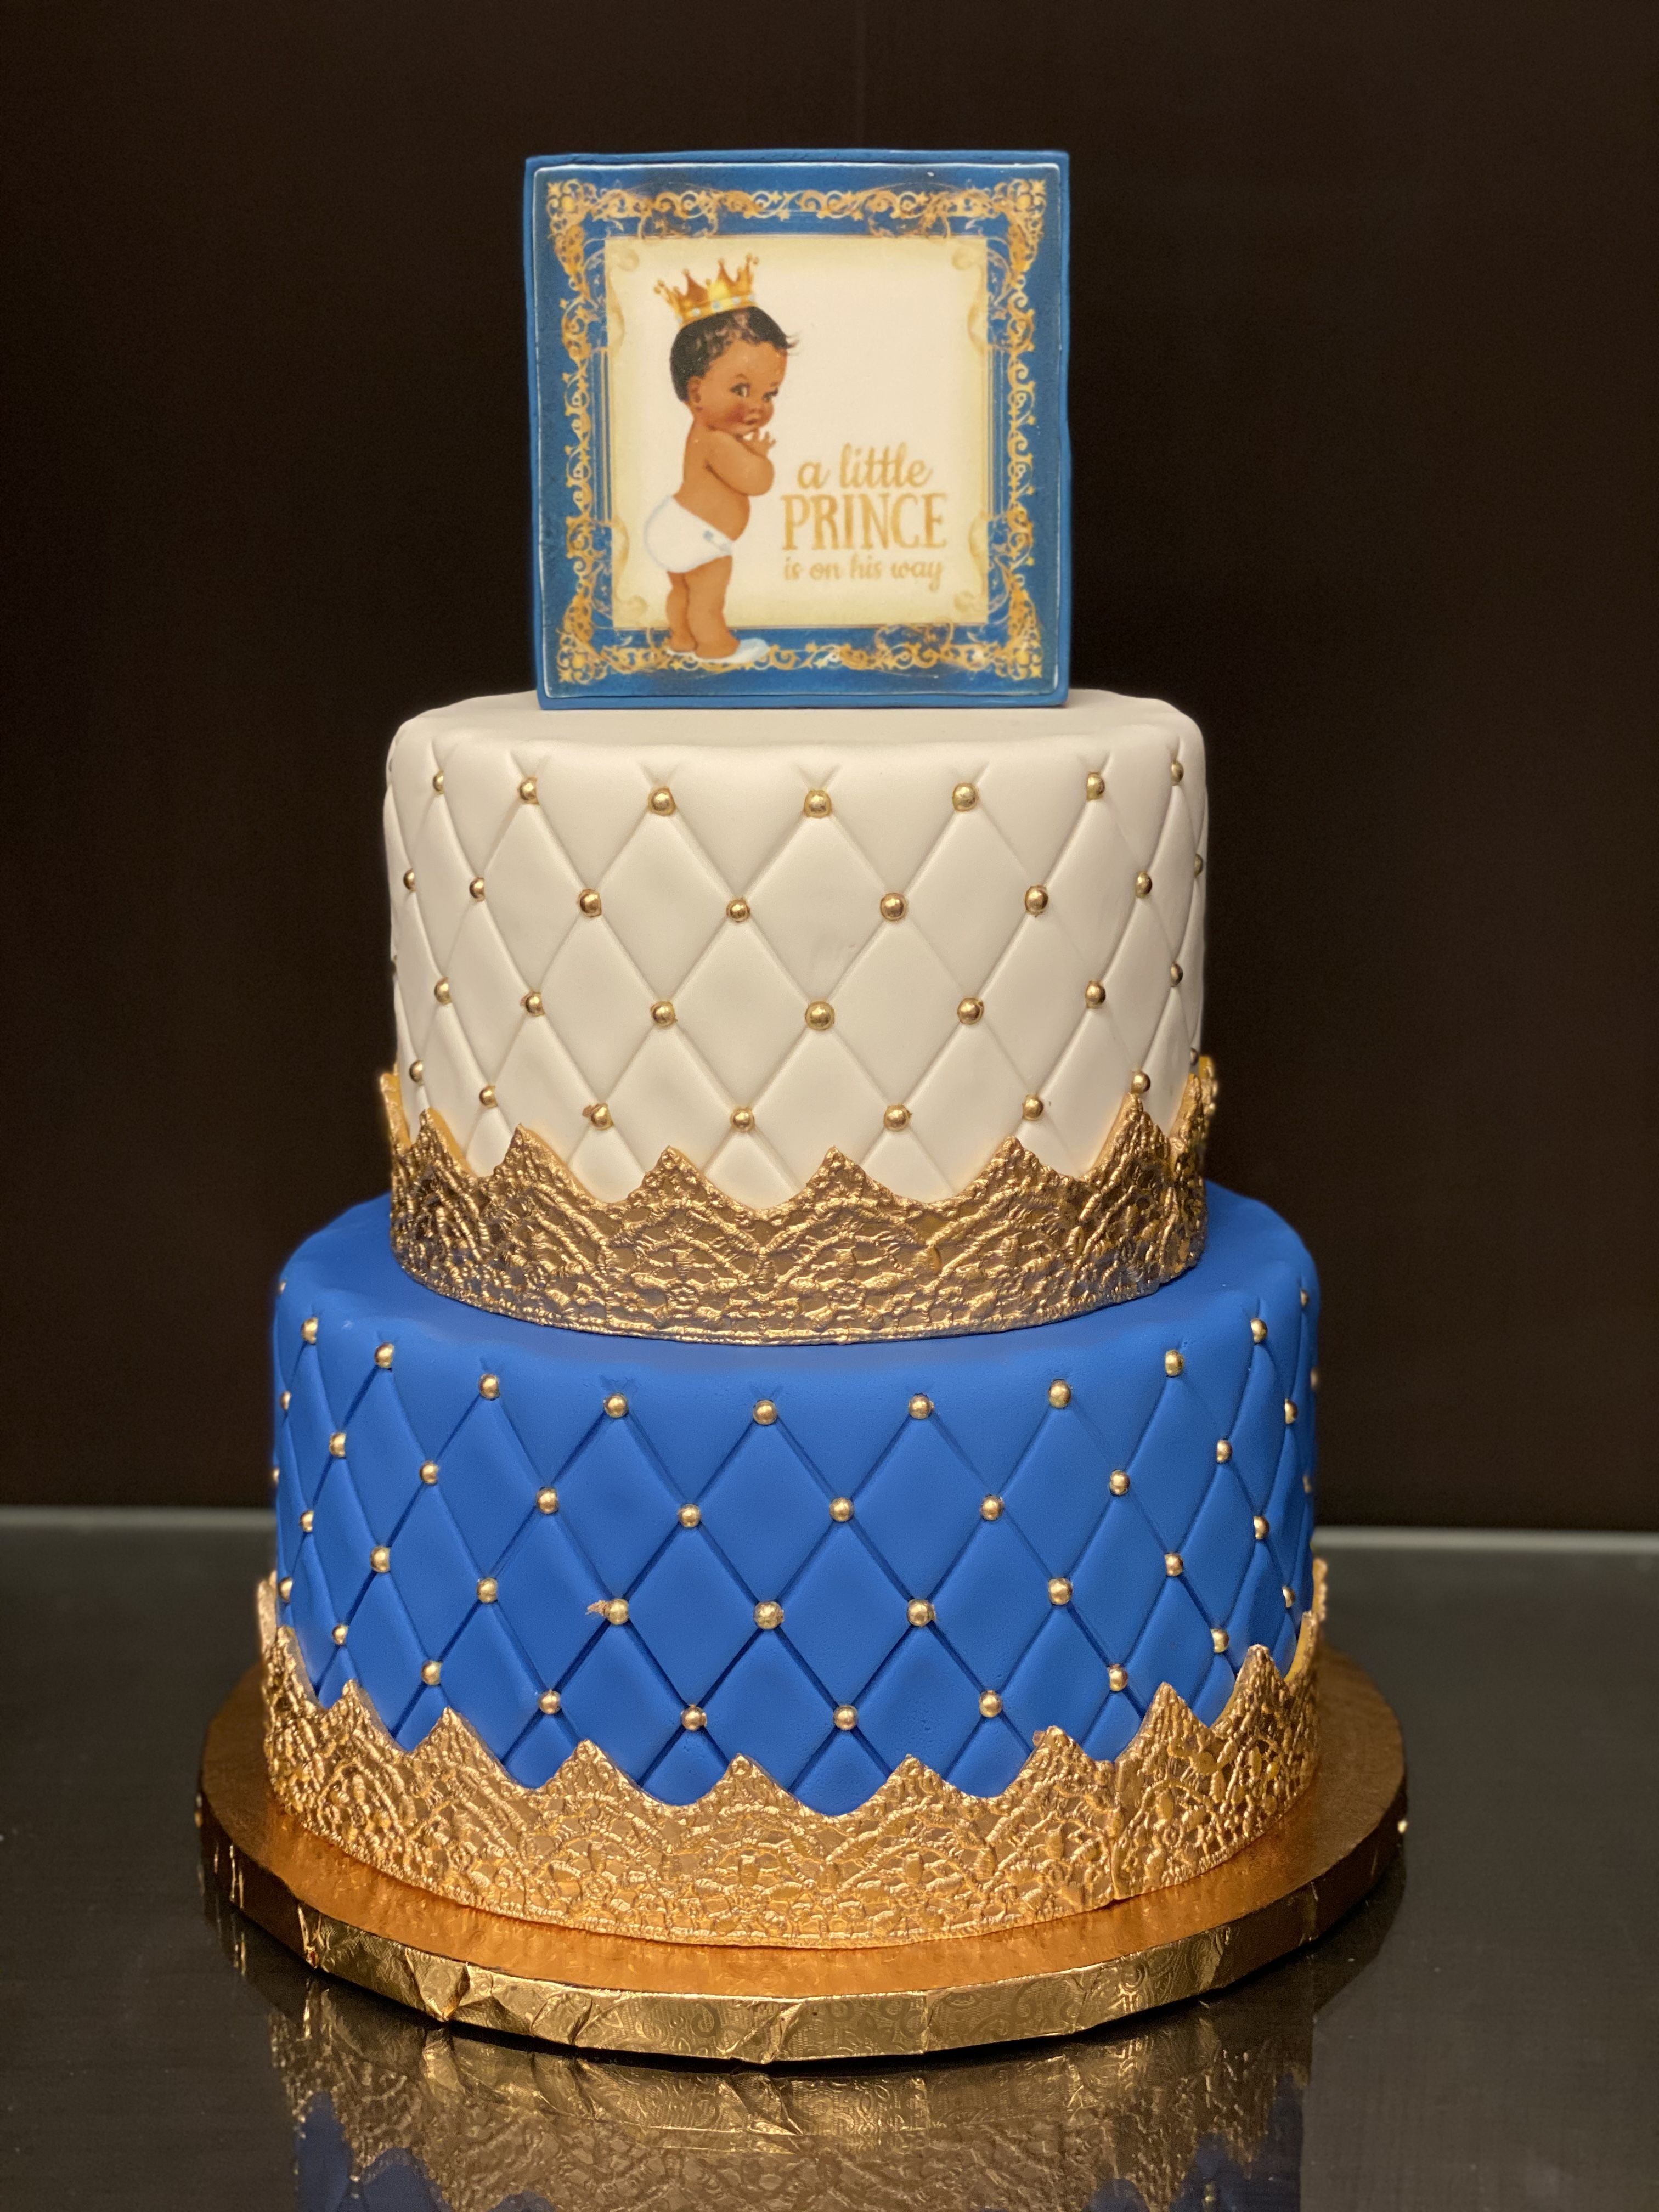 Pin by Gourmet Goodies, Cupcake & Bak on Baby Shower Cakes ...